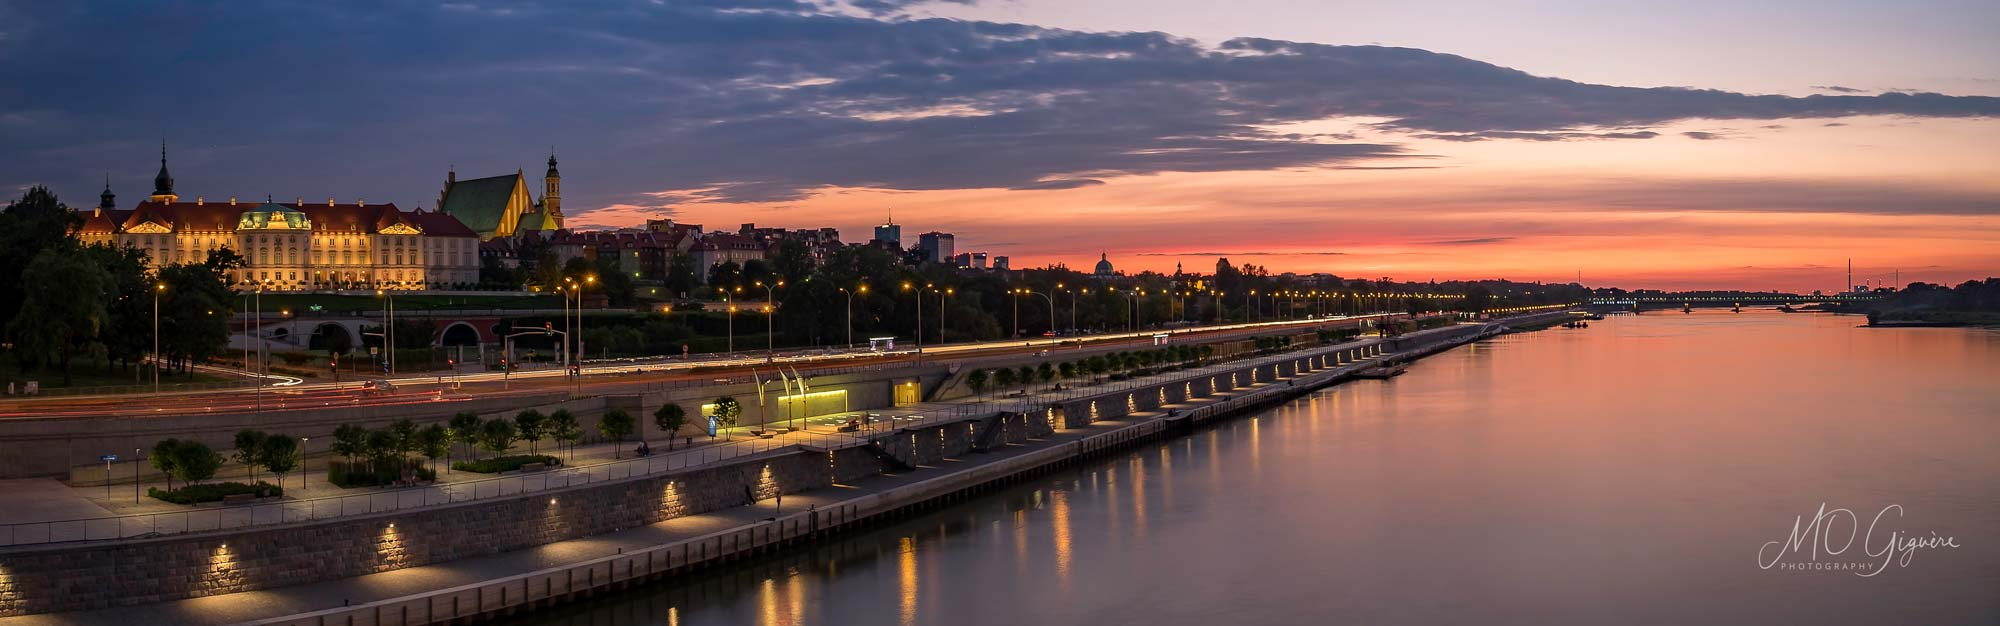 Sunset on the Vistula and the Old town of Warsaw